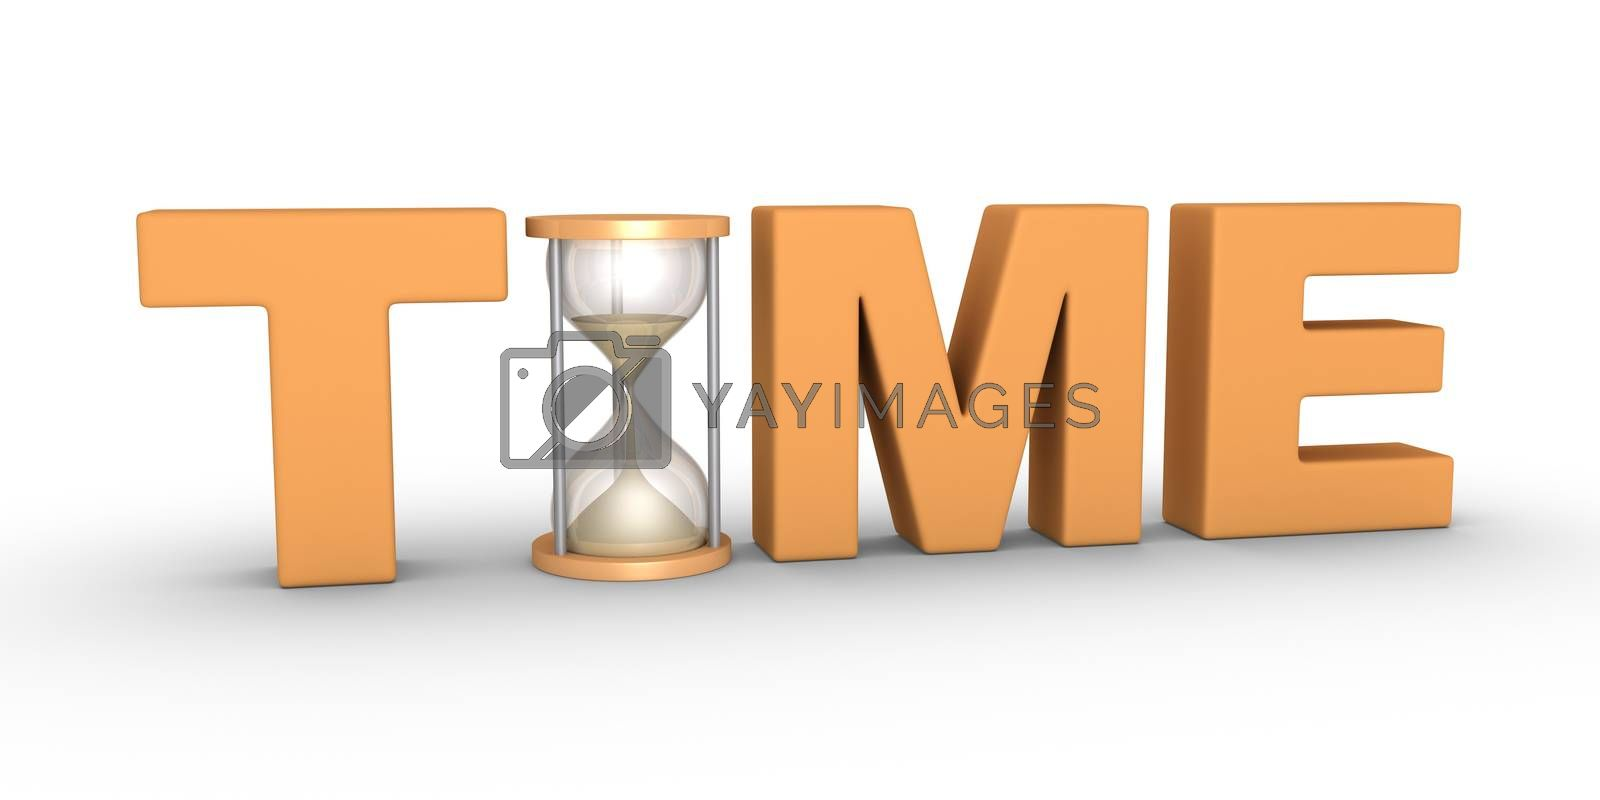 TIME word with an hourglass included in the letters